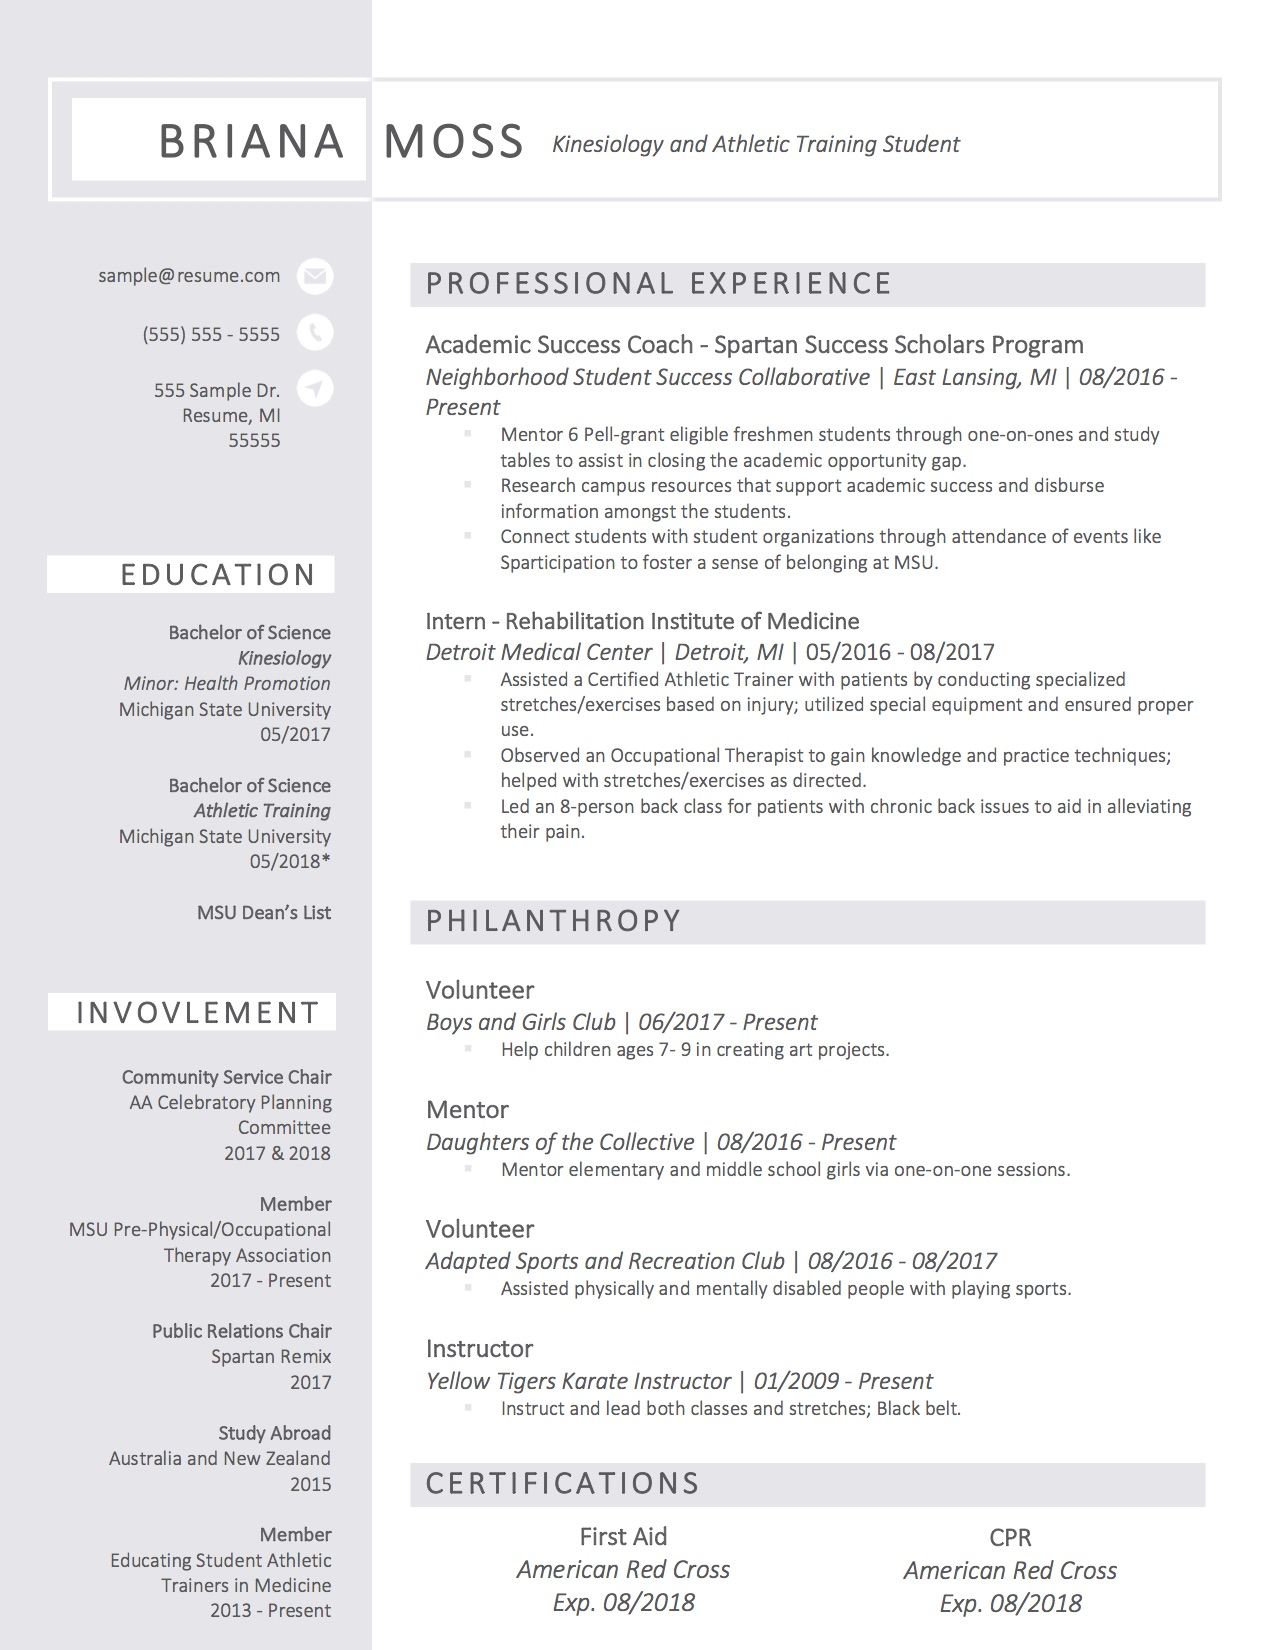 Client Resume #16. Click to Enlarge.